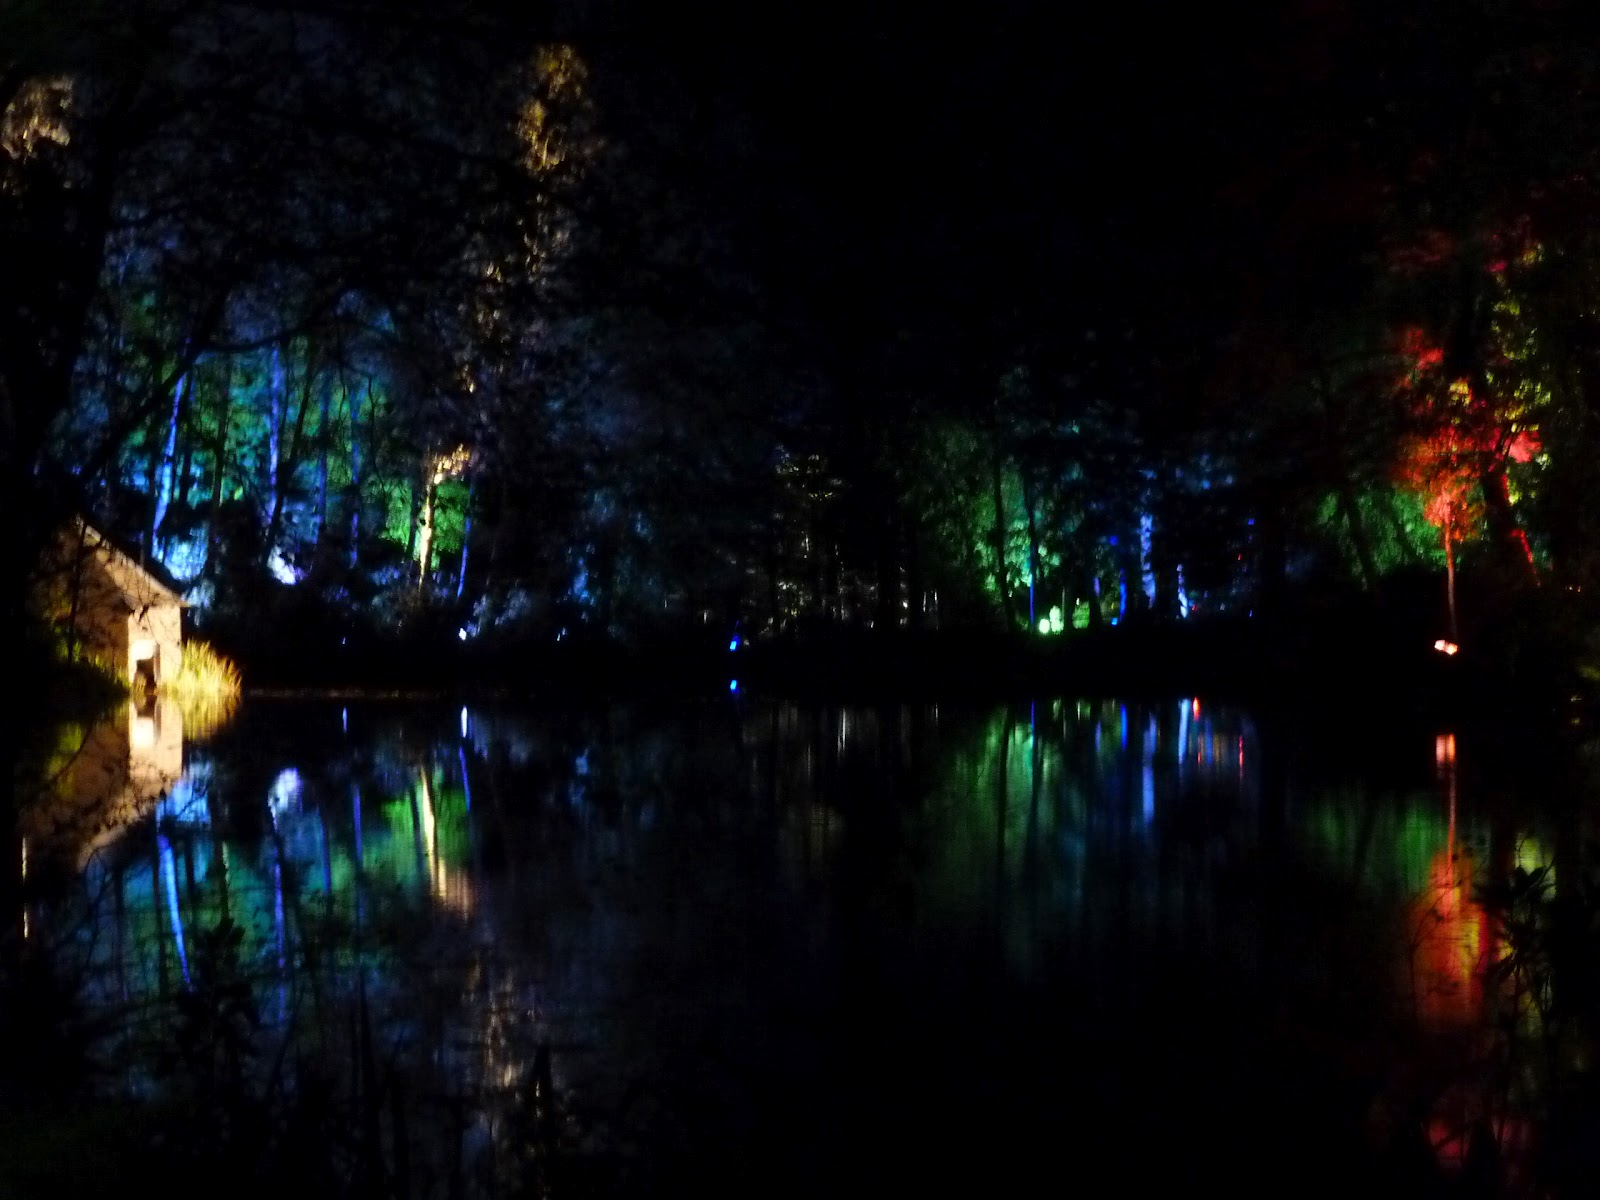 Enchanted Forest, Faskally, Pitlochry